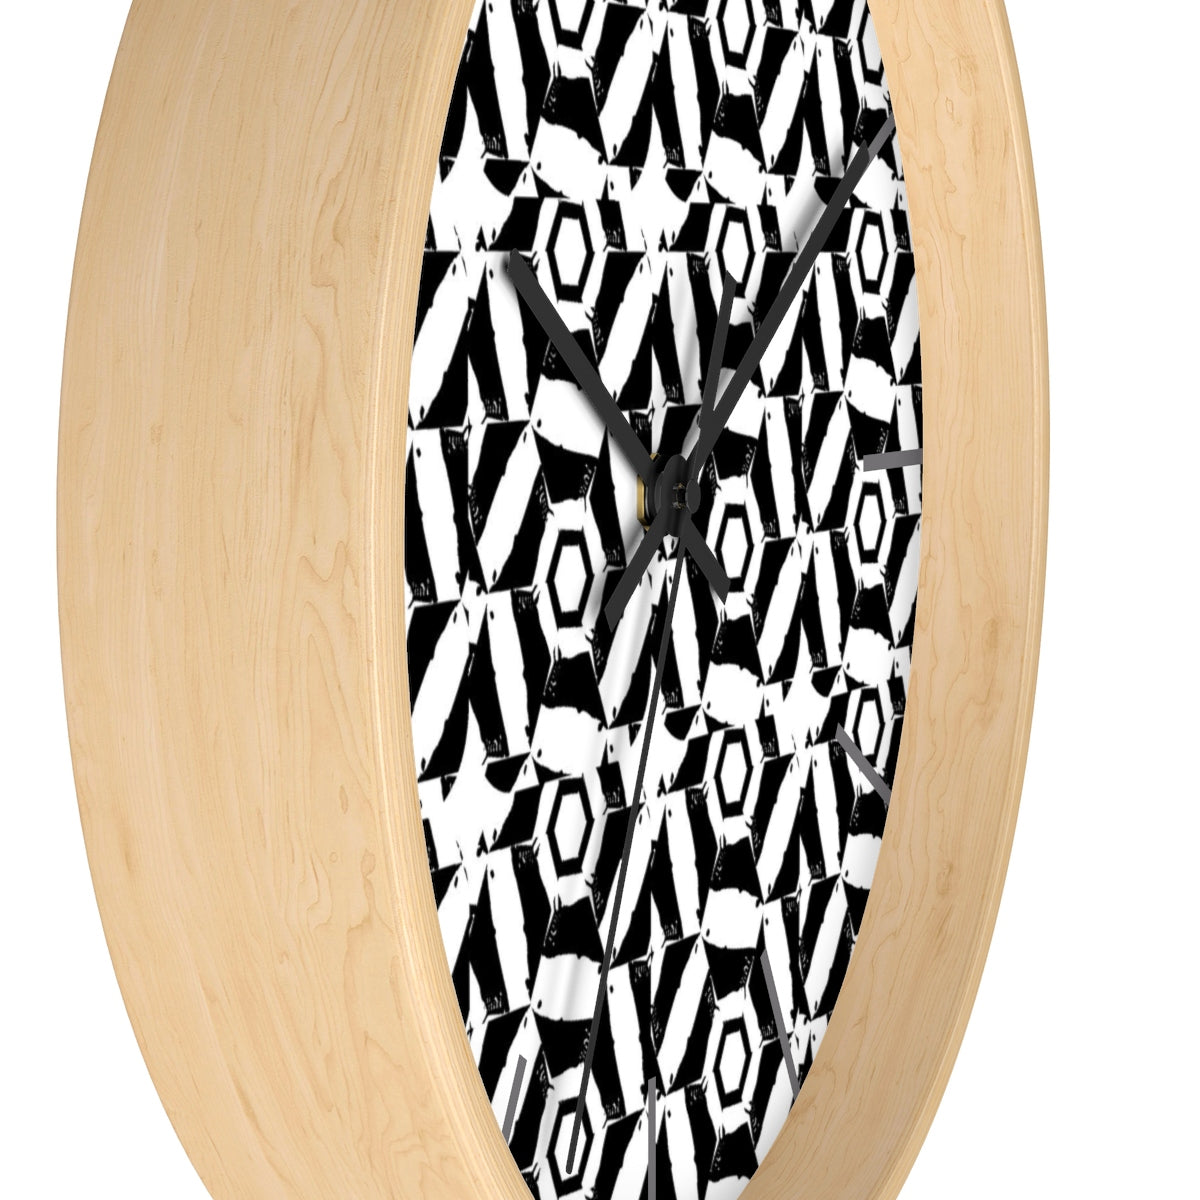 Wall clock - A Million Watts of Sound | A Time Piece - Designed by @remlor - Remlor Art